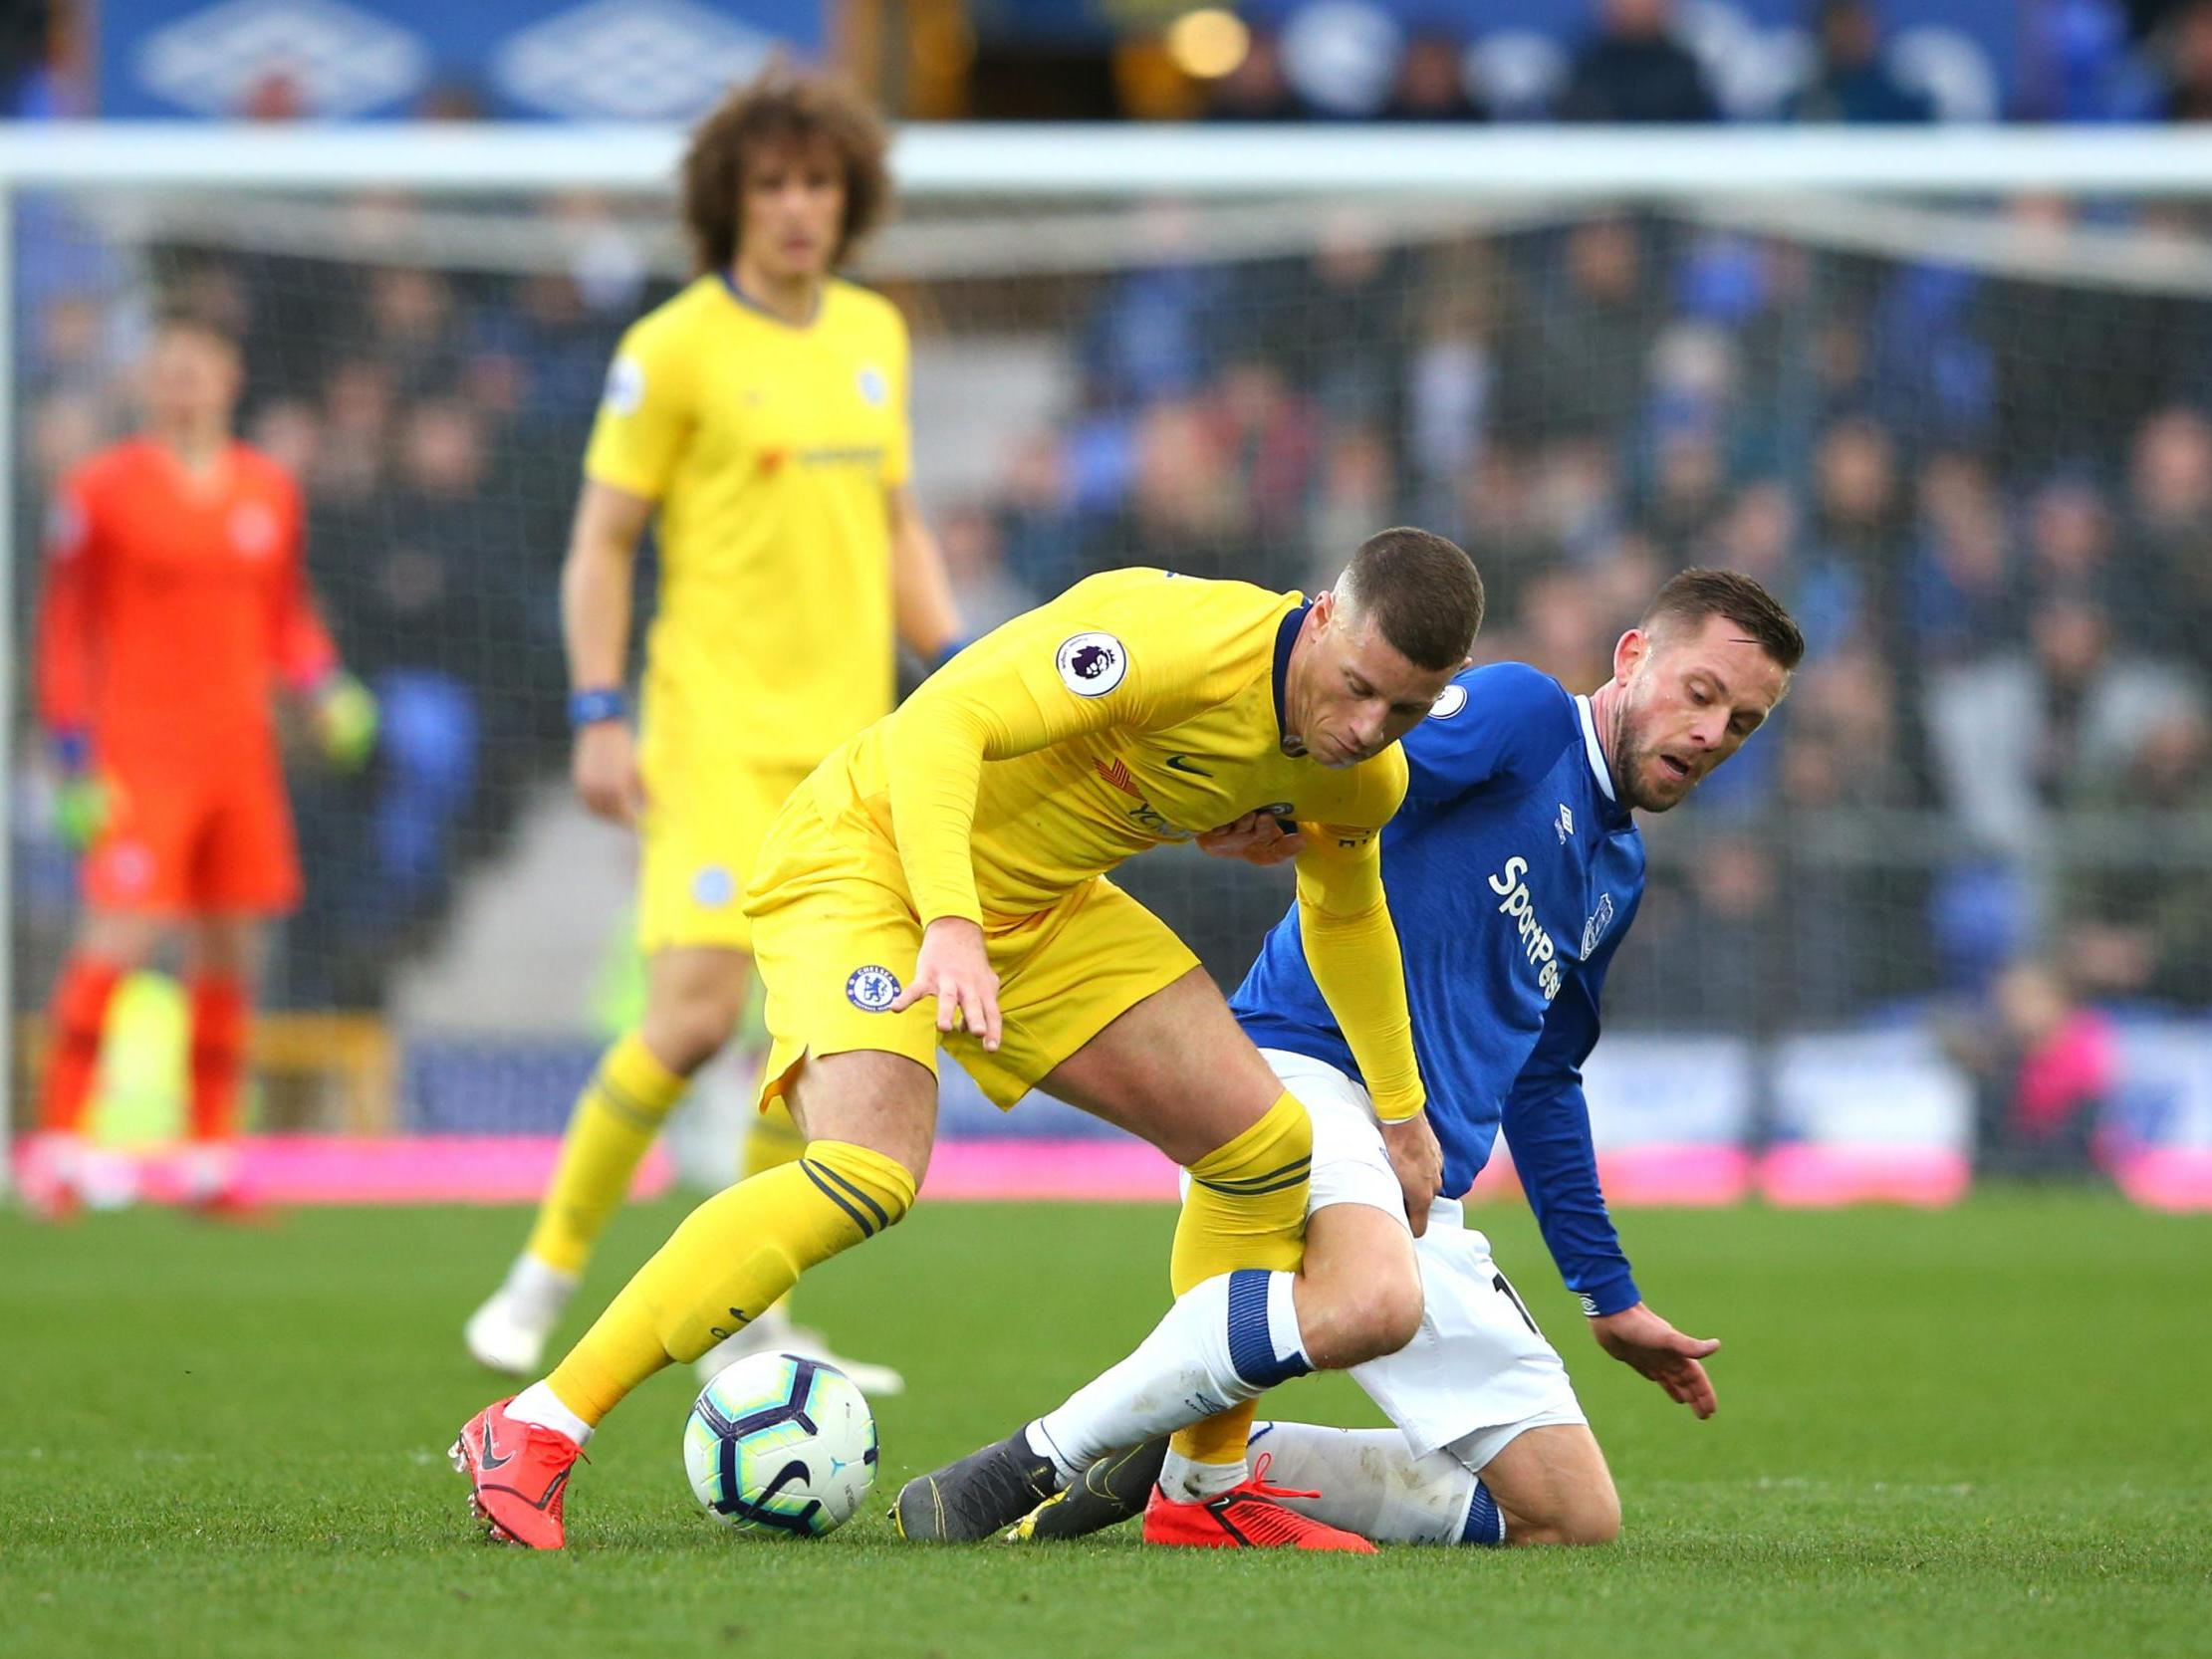 Everton investigate after object 'thrown' at Ross Barkley in Chelsea clash